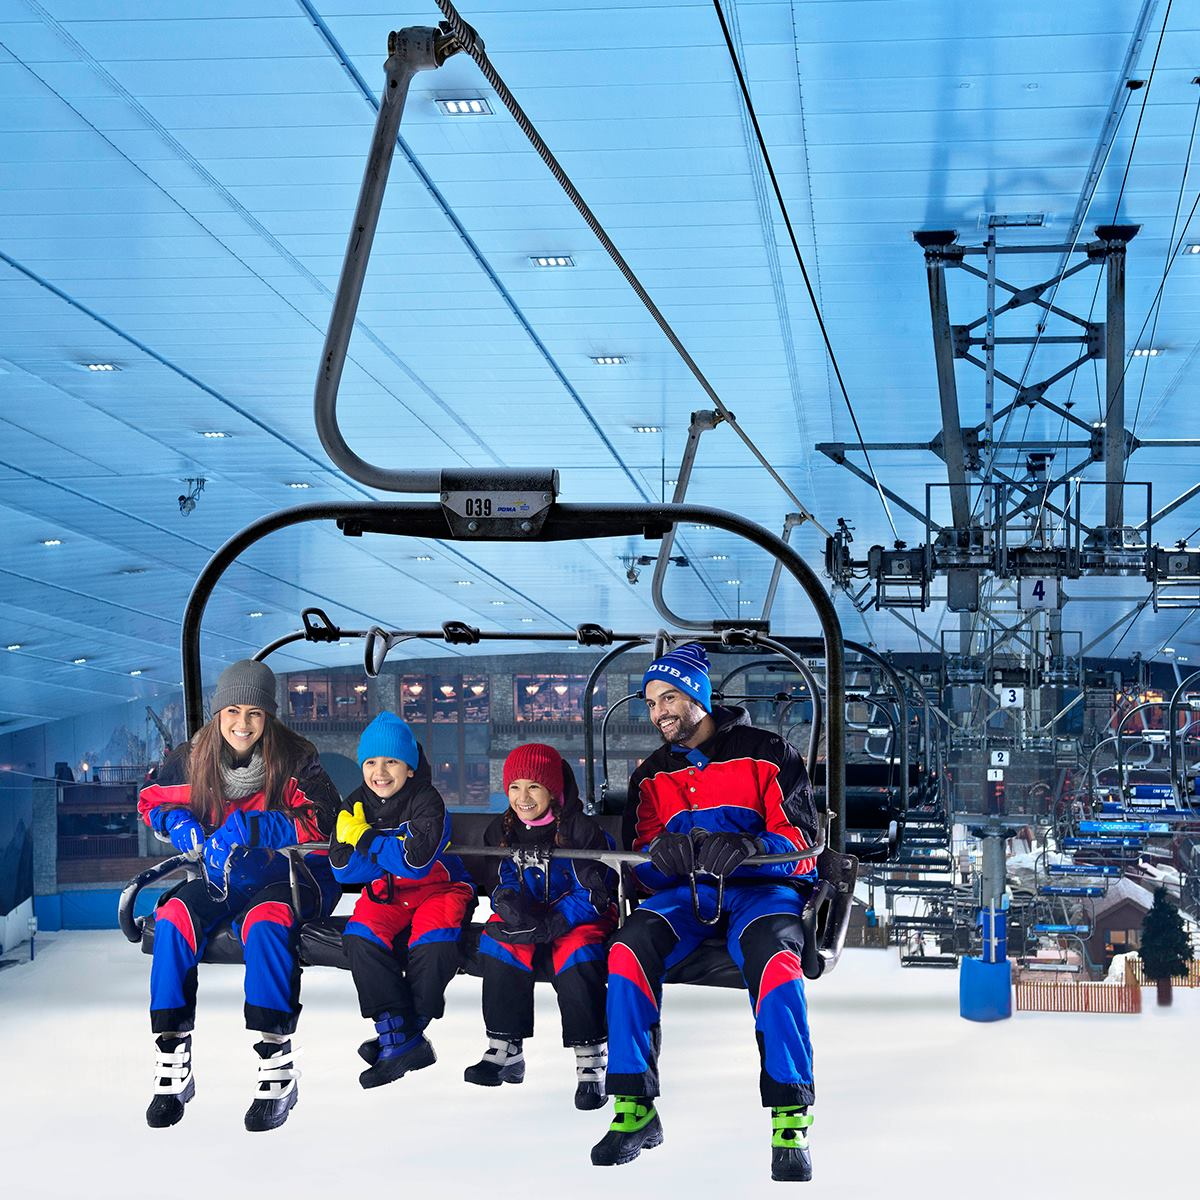 Mall-of-the-Emirates-Skiing